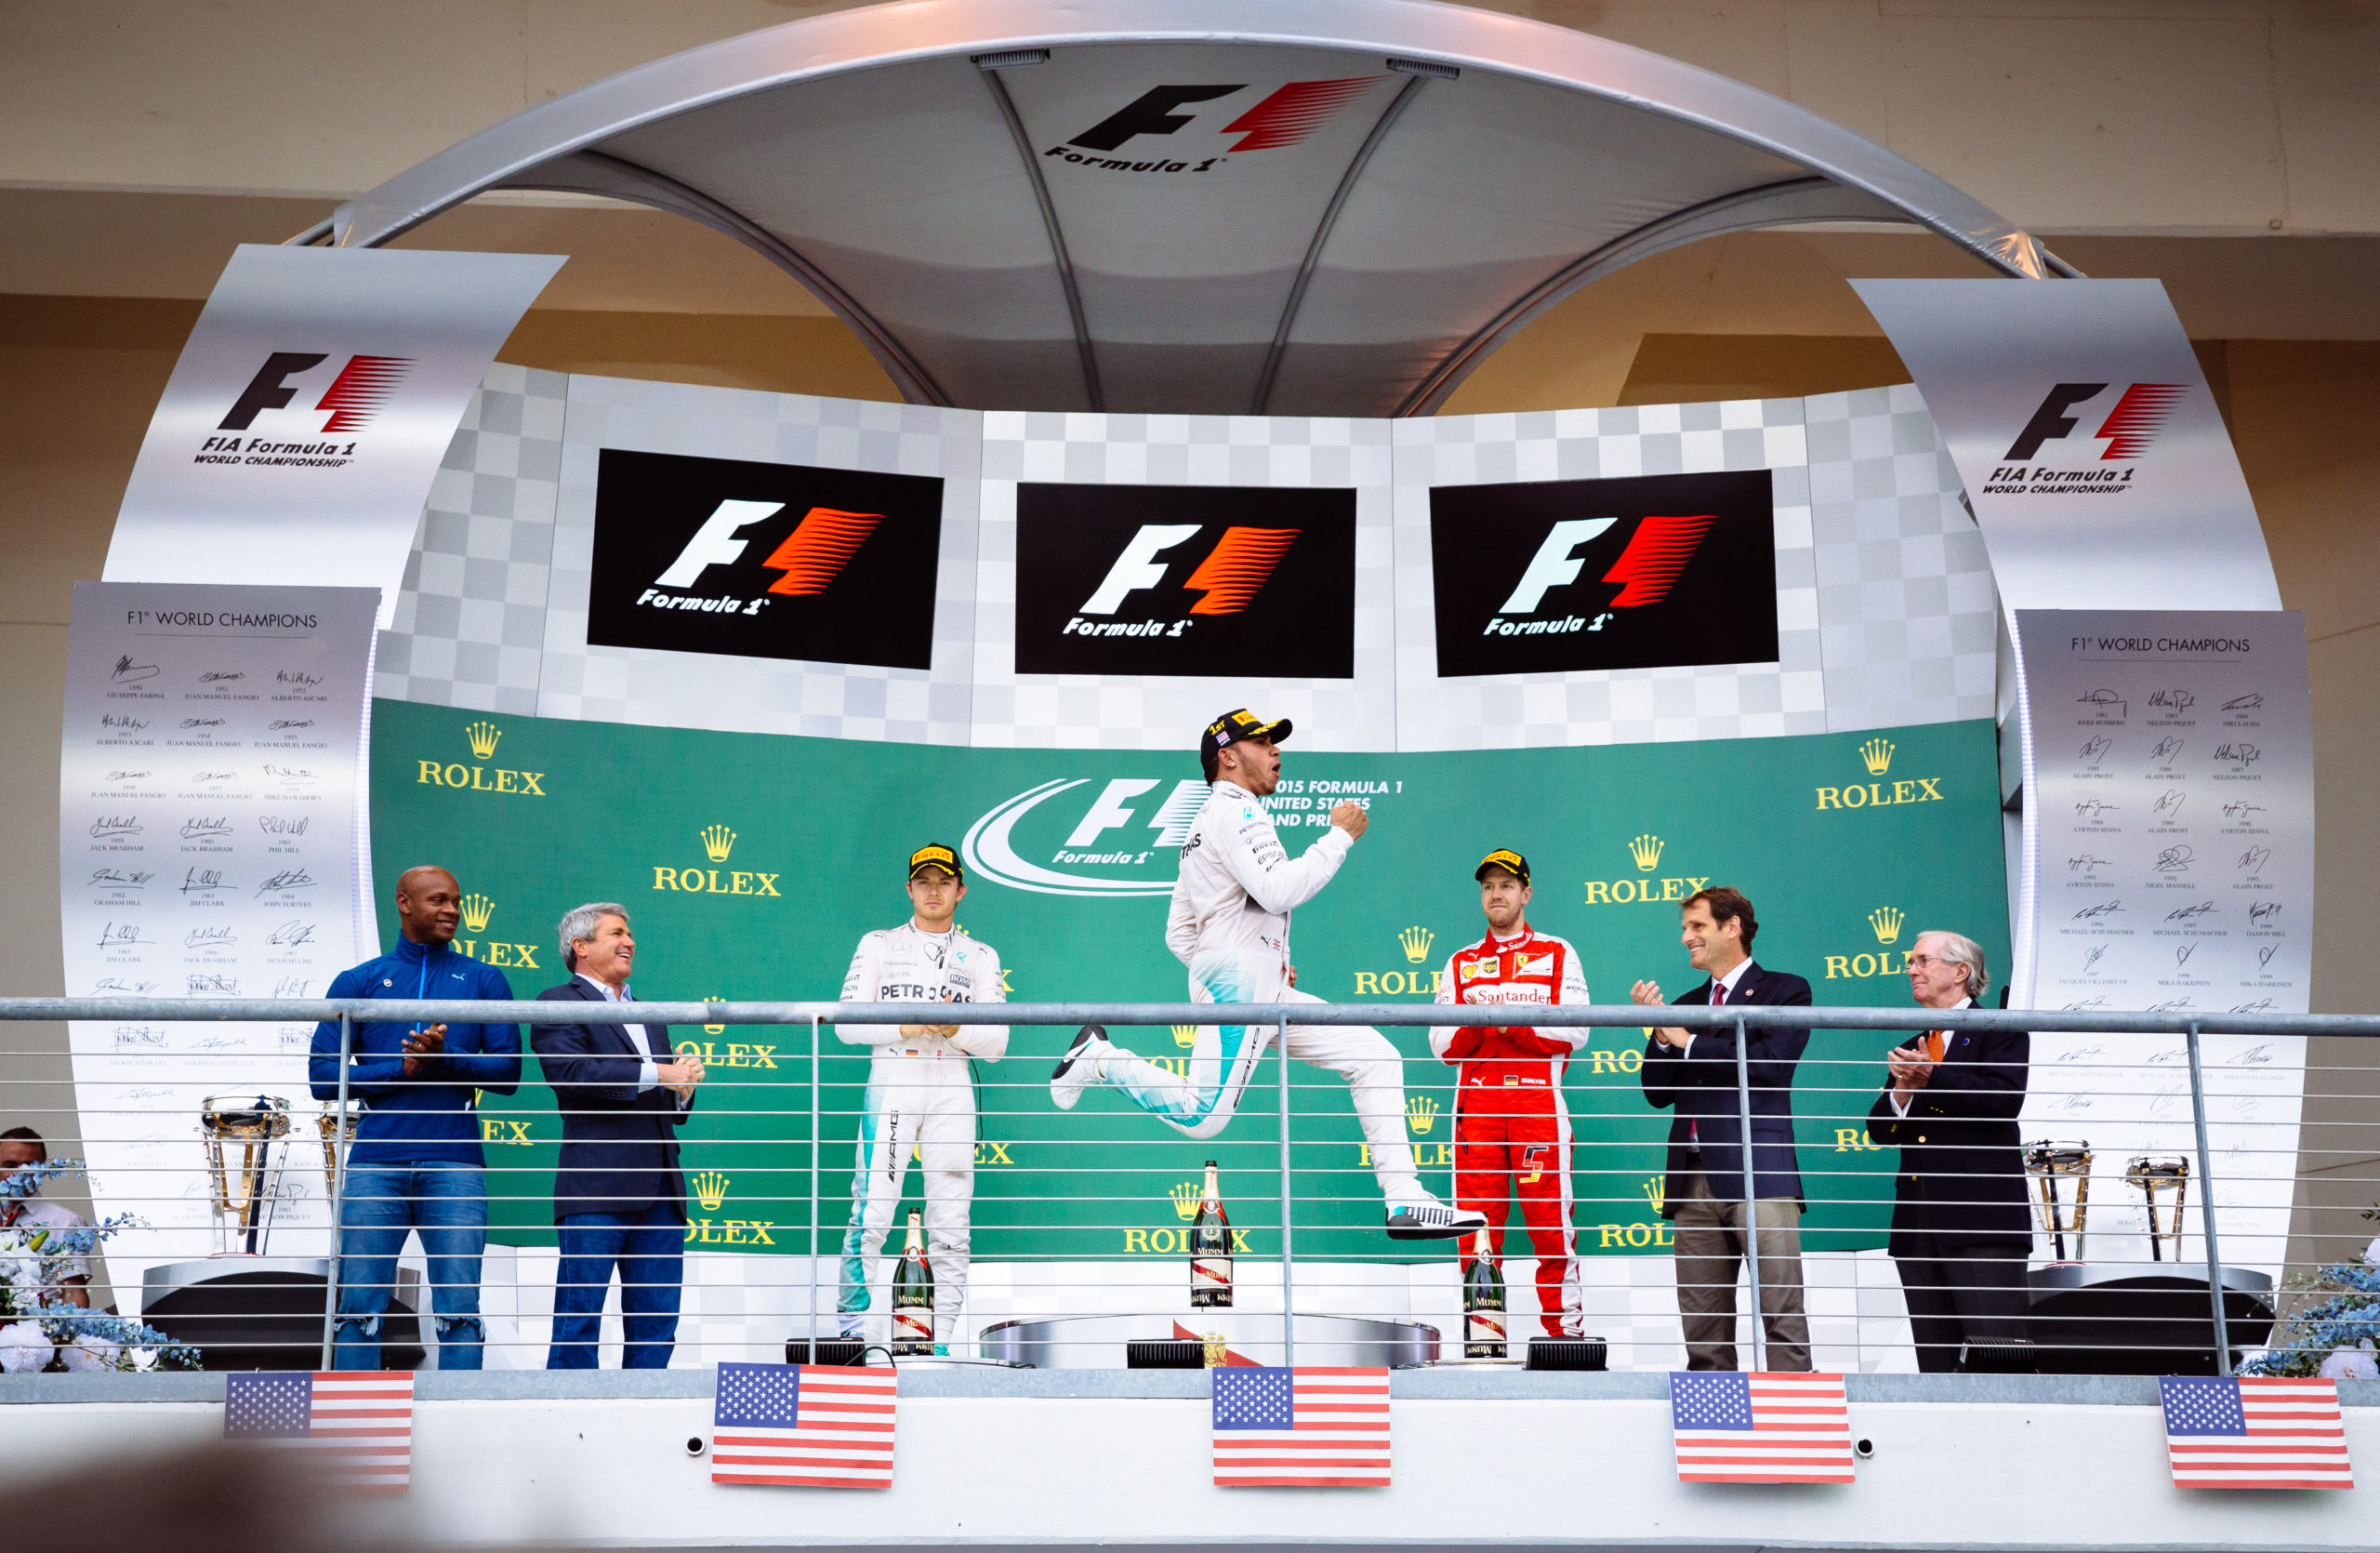 Lewis Hamilton celebrates his race win at the 2015 United States Grand Prix which secured his 5th Drivers' championship.